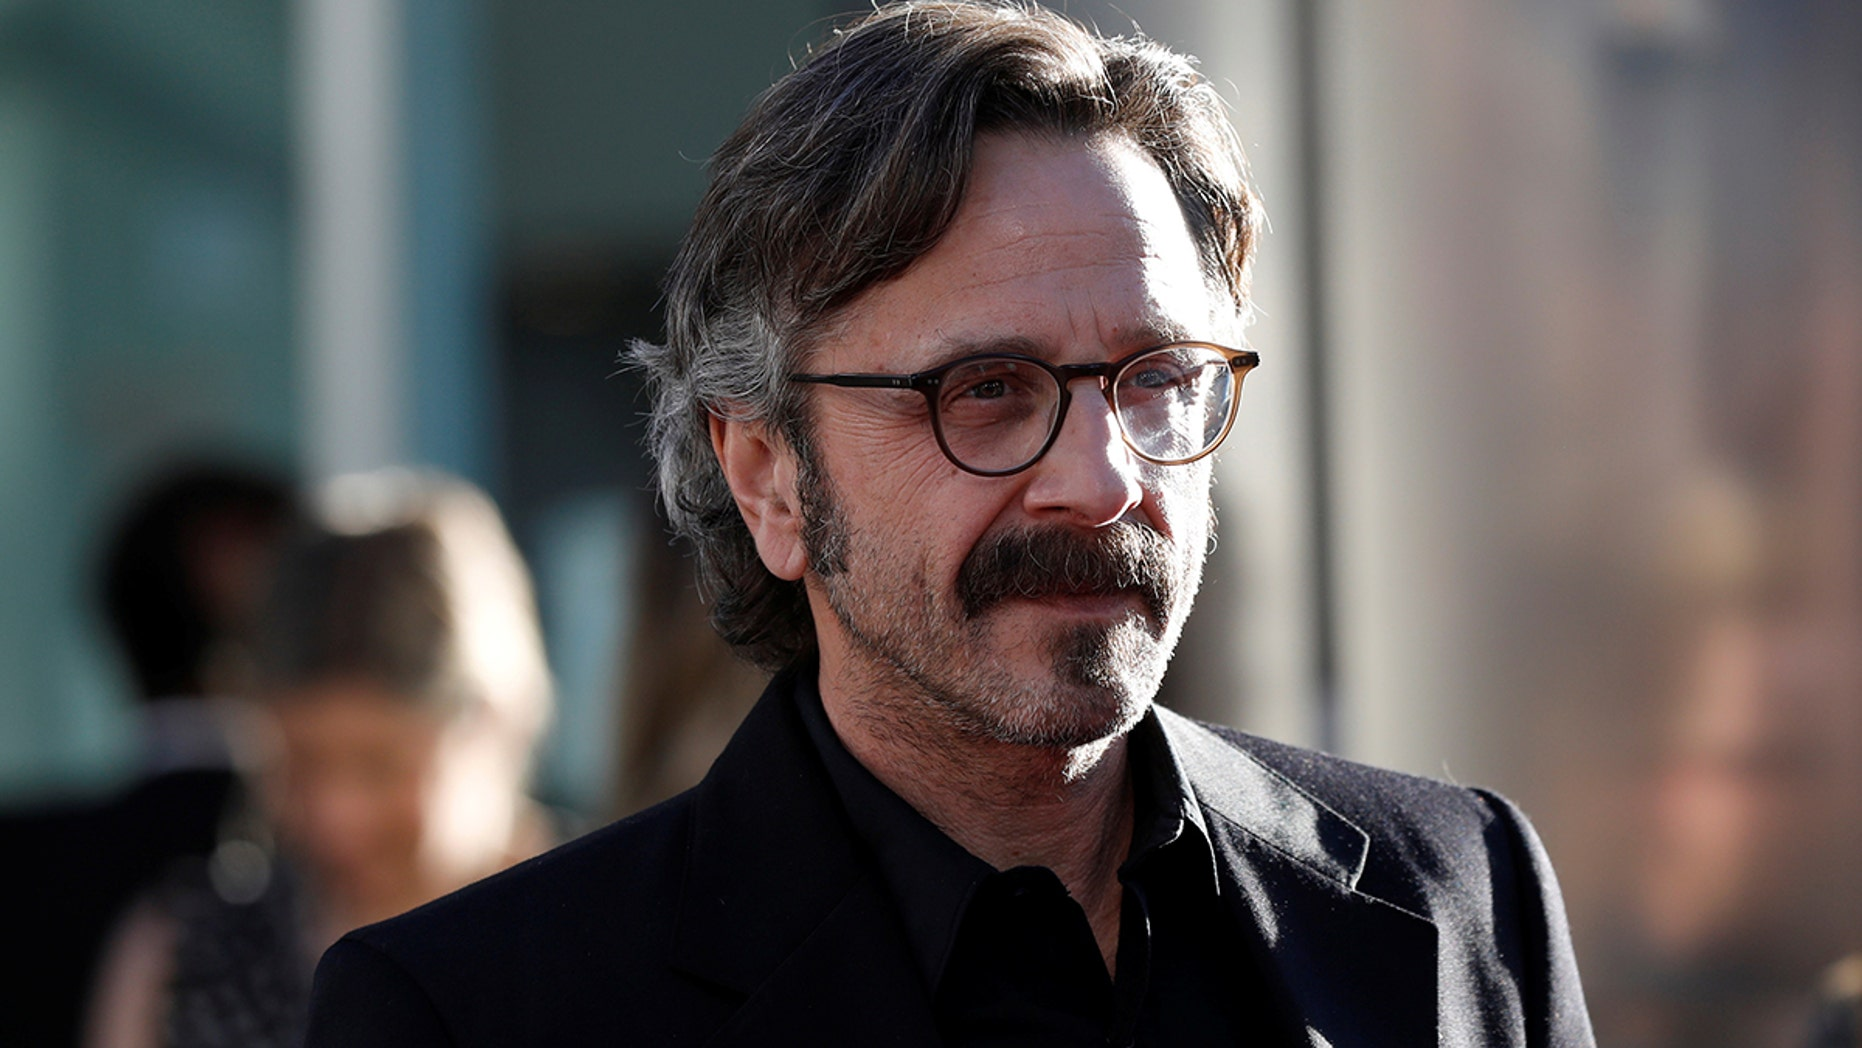 """Cast member Marc Maron poses at a premiere for the television series """"Glow"""" in Los Angeles, California, U.S., June 21, 2017.   REUTERS/Mario Anzuoni - RC1554EDEE80"""